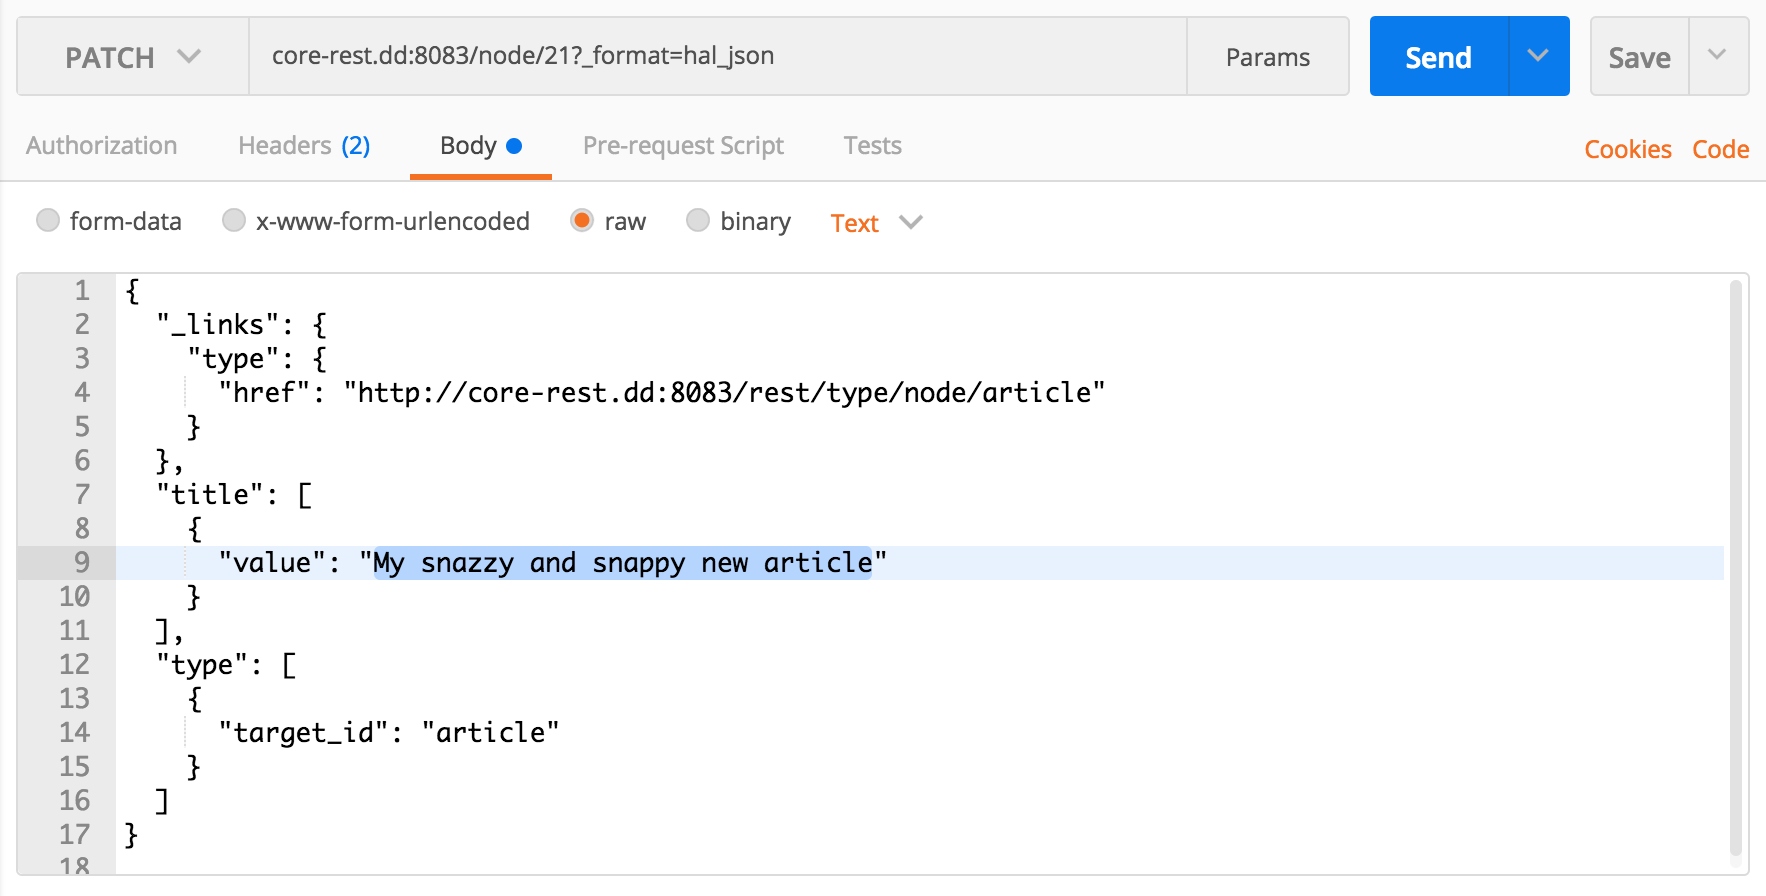 Issuing a PATCH request with Postman